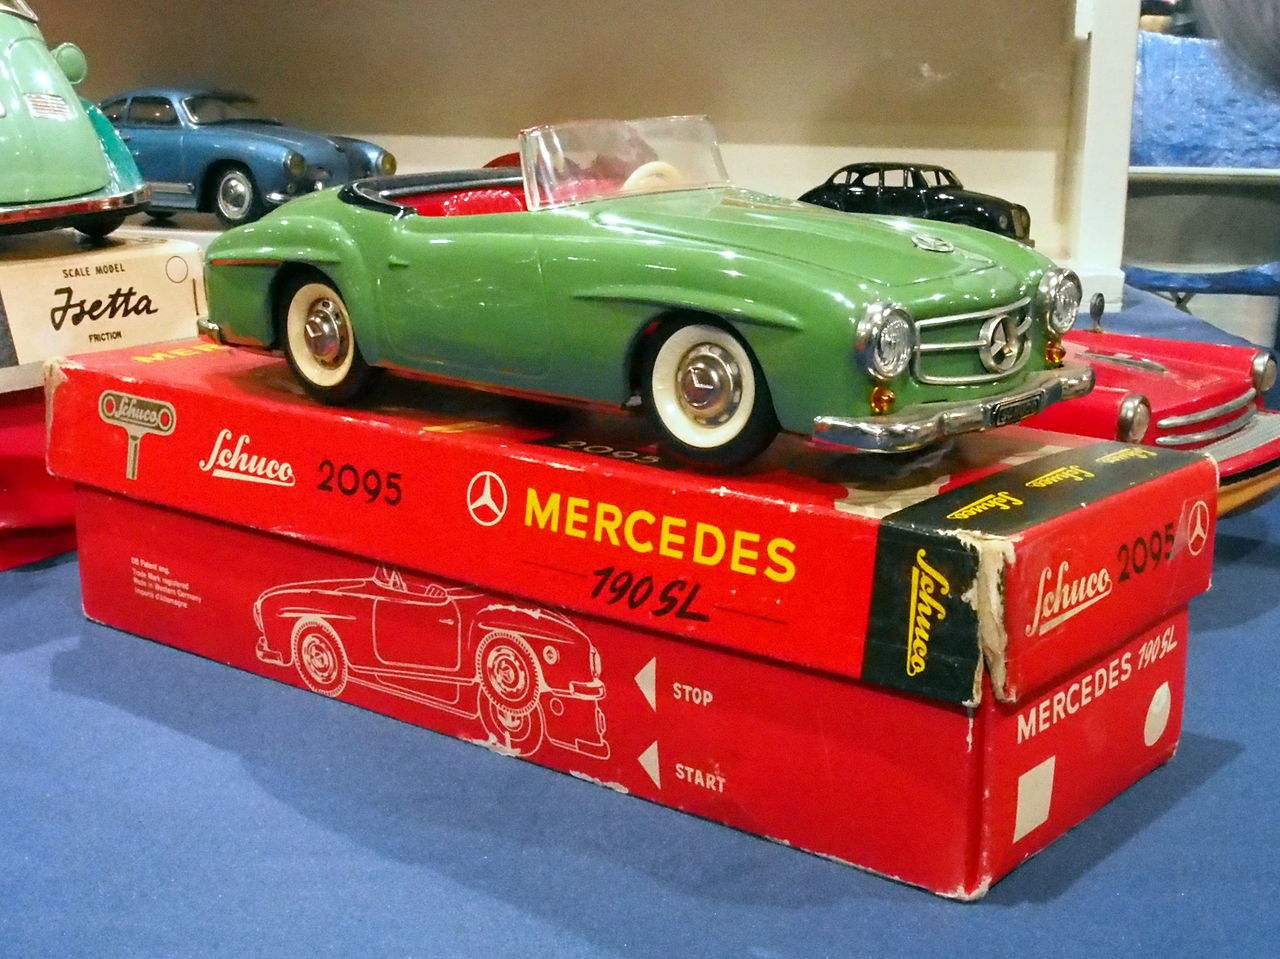 file litho tin toy green mercedes 190sl schuco 2095 pic3. Black Bedroom Furniture Sets. Home Design Ideas